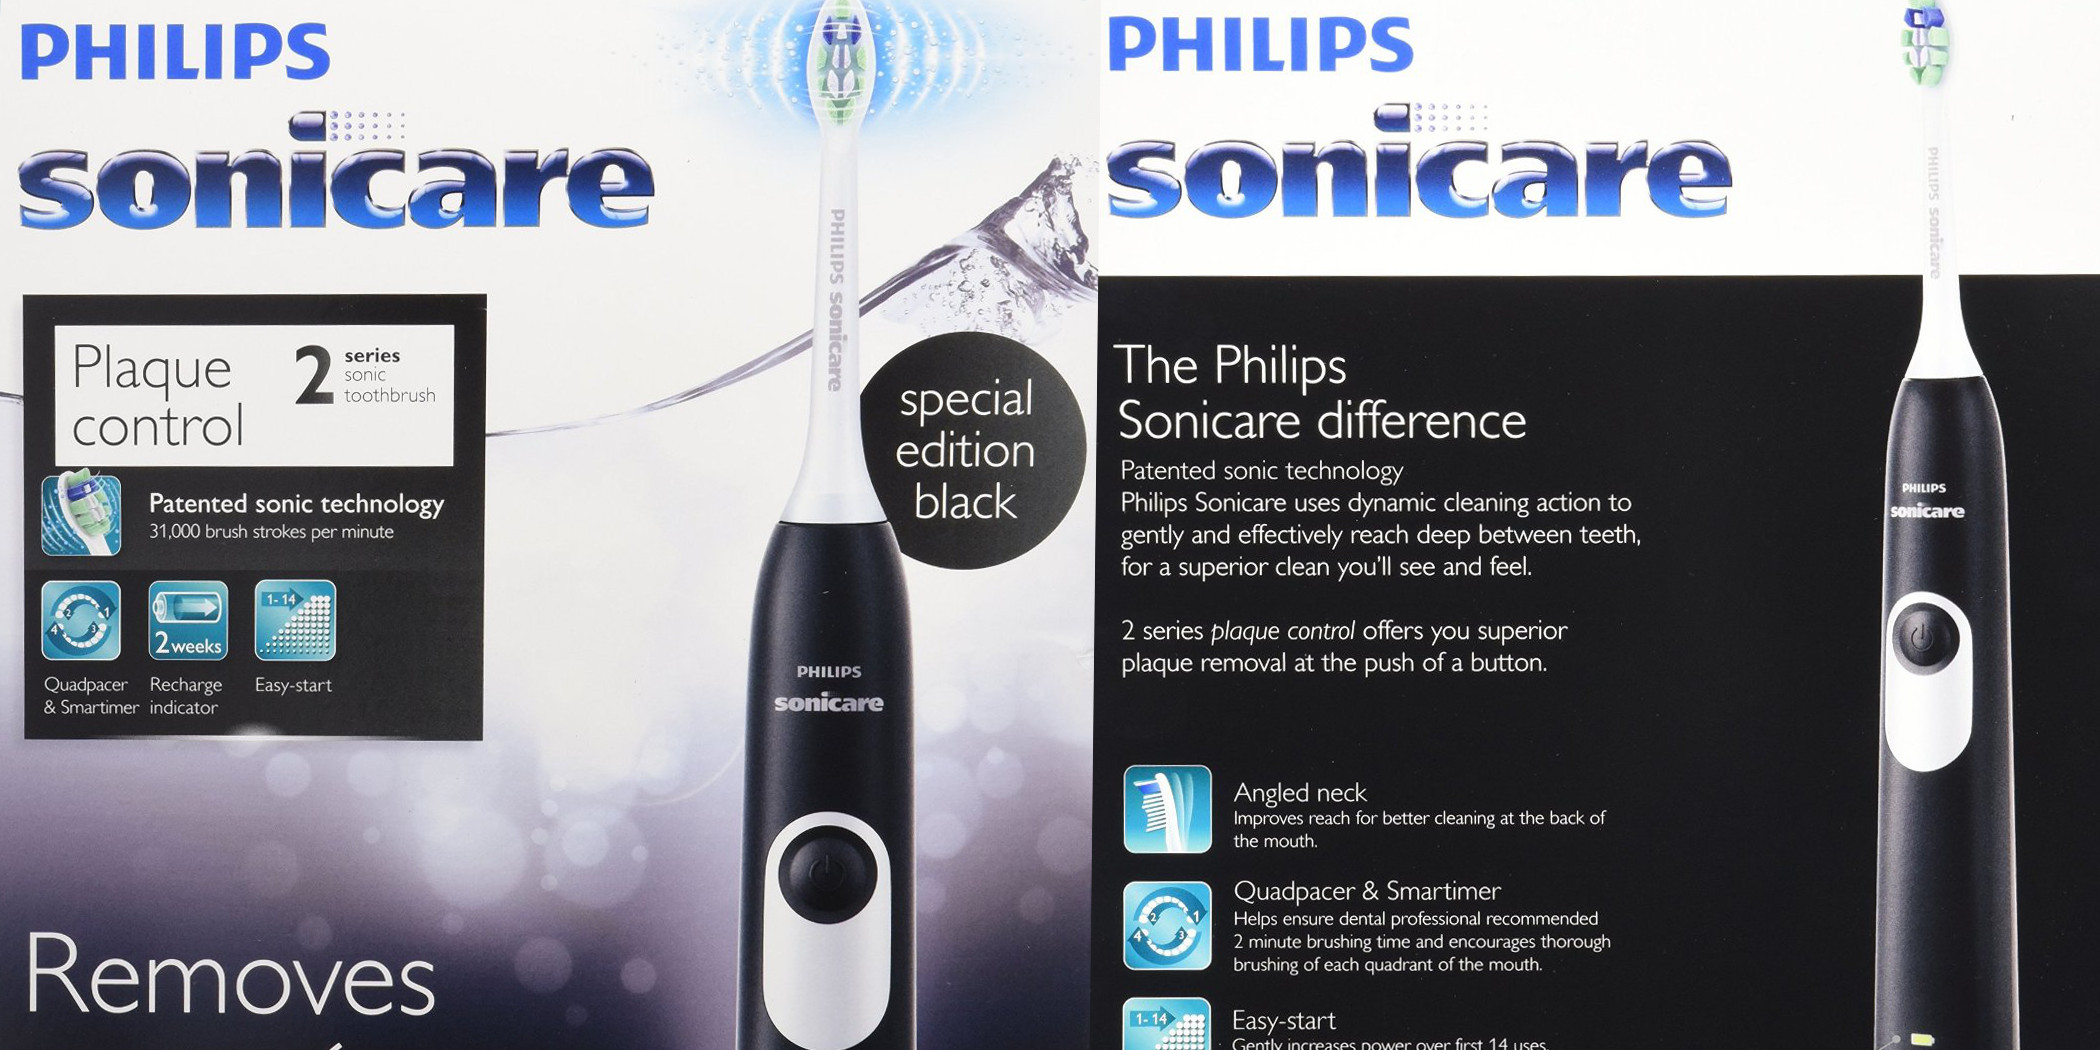 philips-sonicare-2-series-plaque-control-sonic-electric-rechargeable-toothbrush-hx621130-5